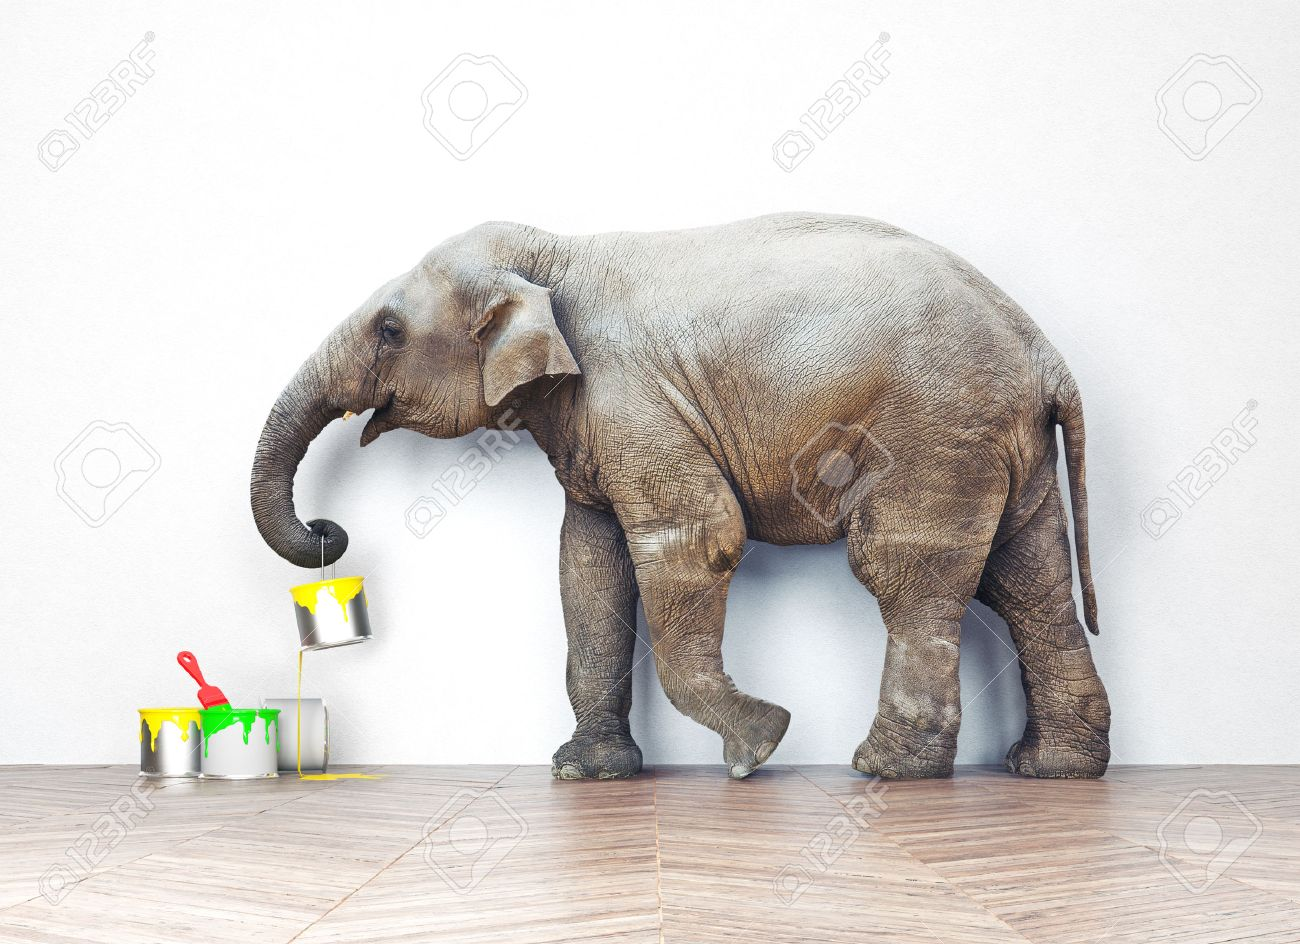 An elephant with paint cans. Photo combination concept Standard-Bild - 47971979